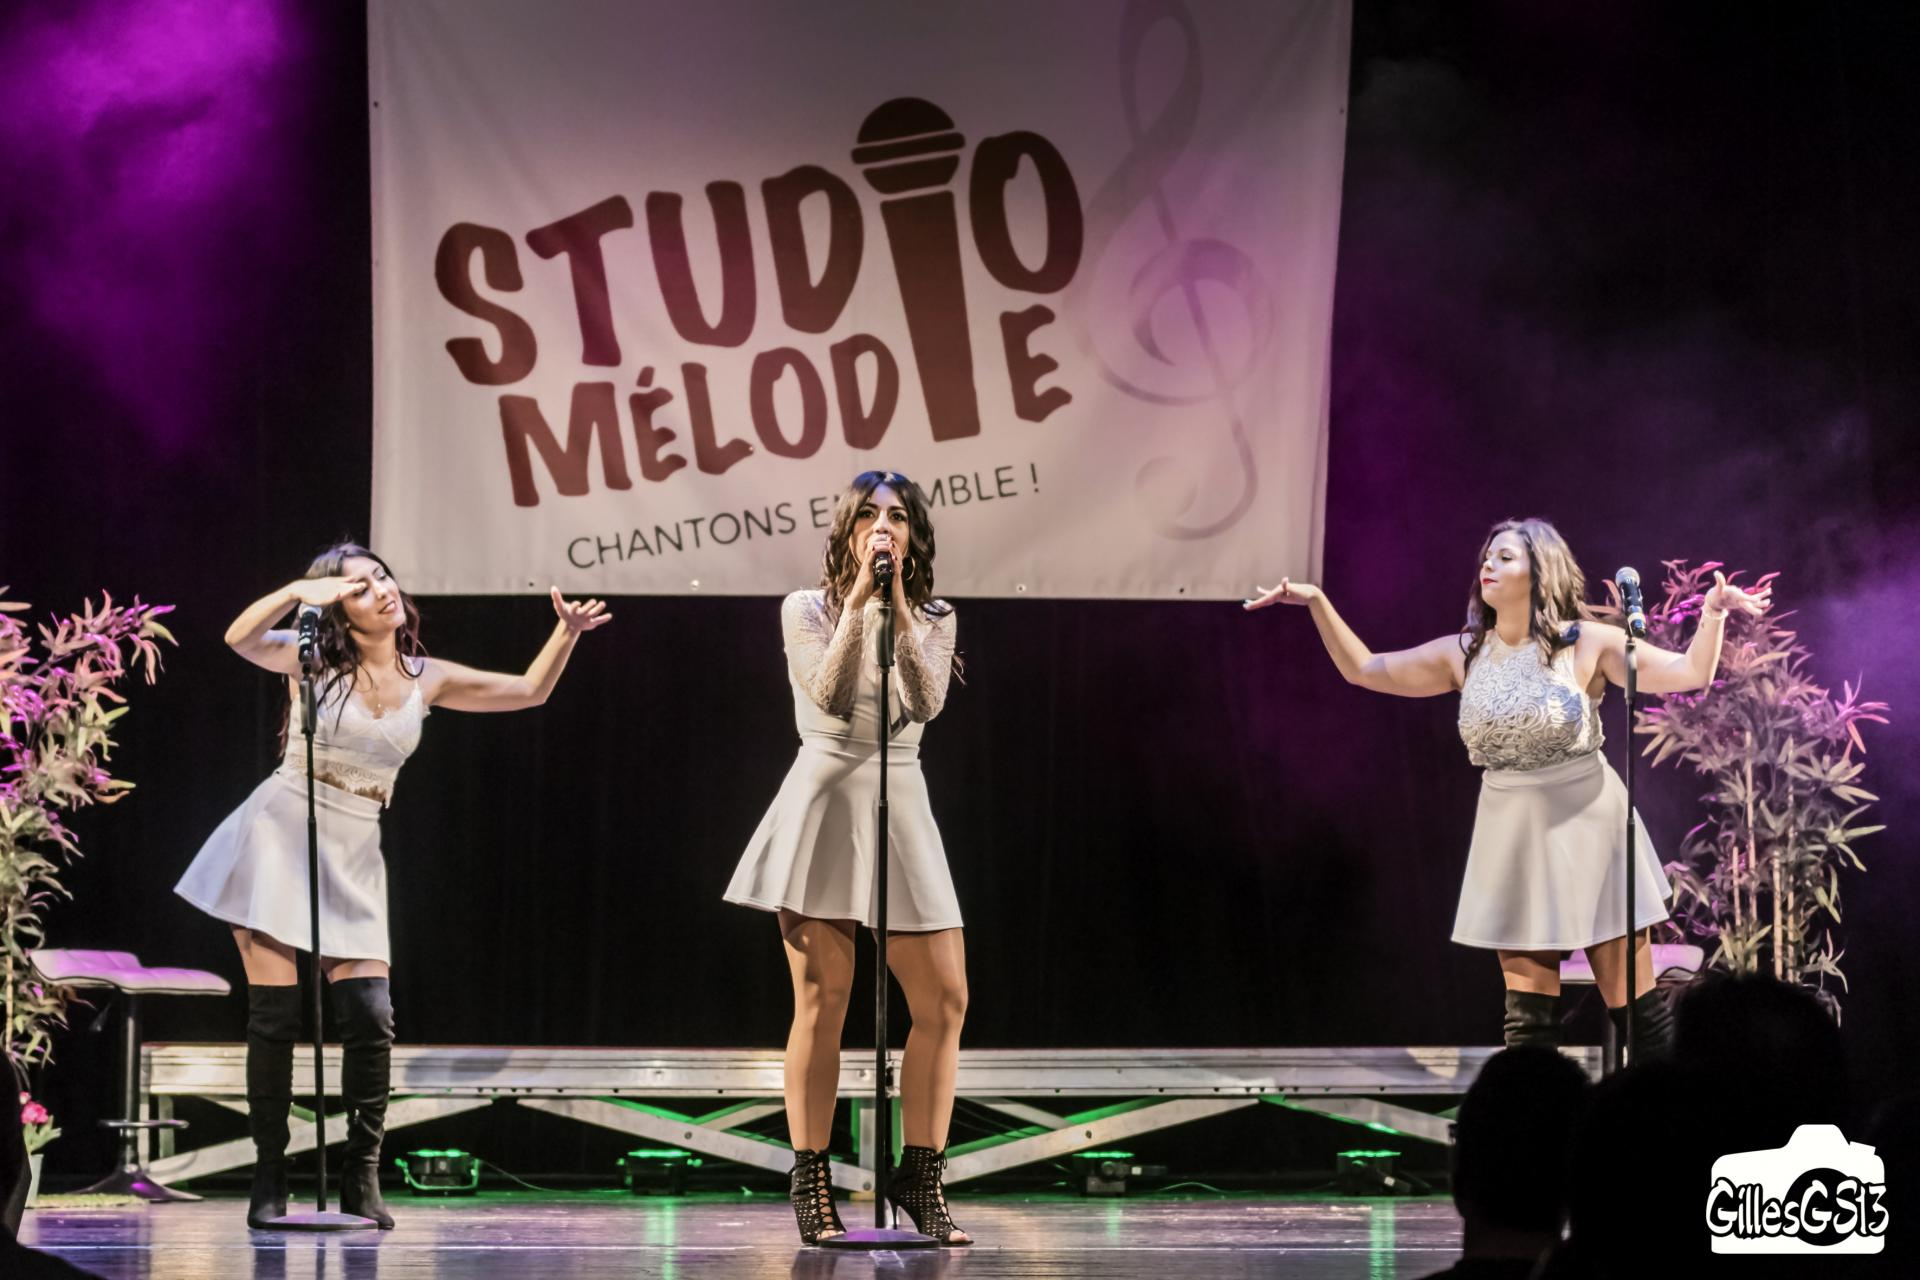 2019 03 16 studio melodie spectacle 2 059